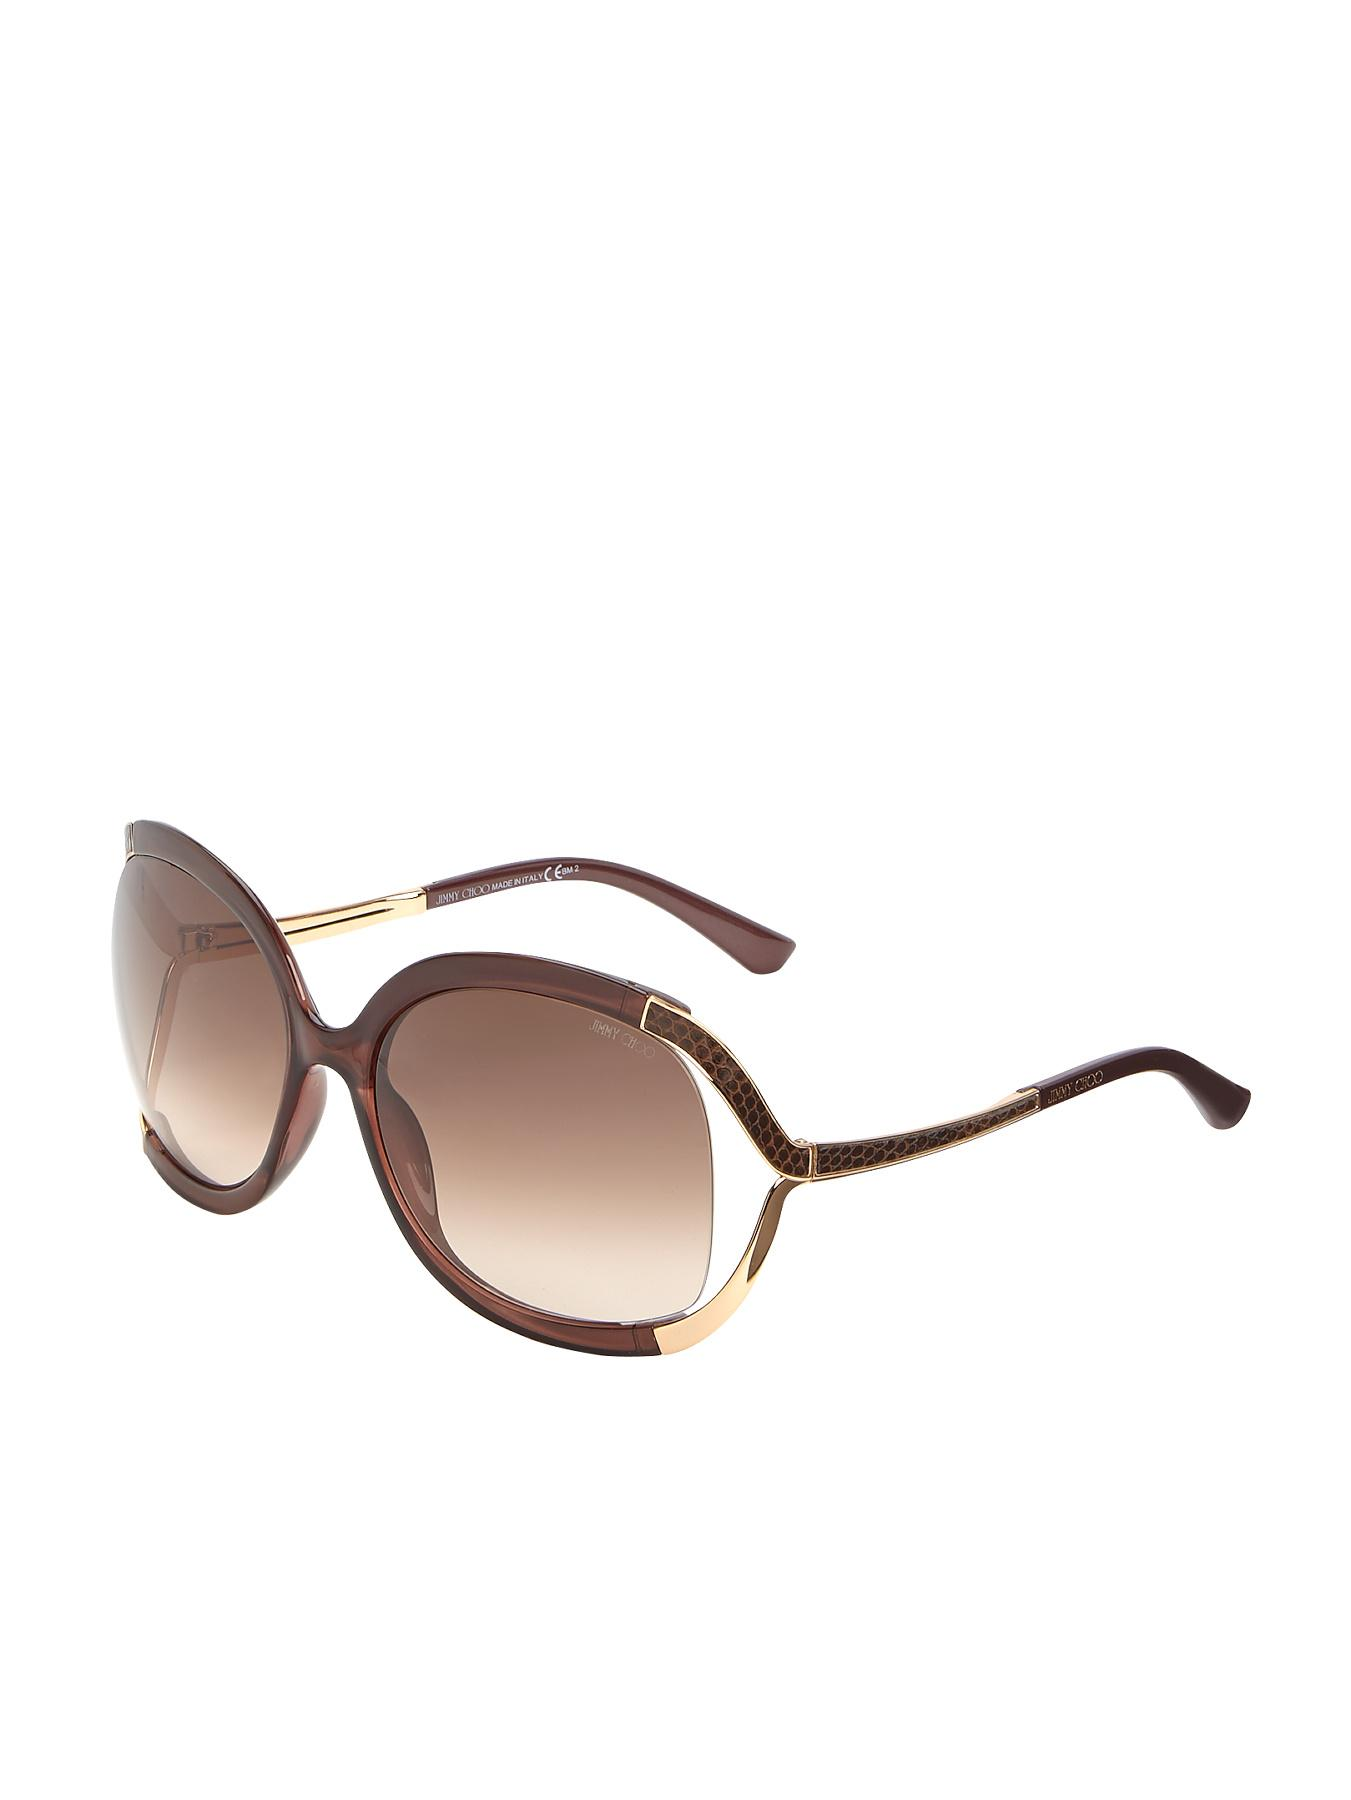 Jimmy Choo Oversized Sunglasses - Brown, Brown